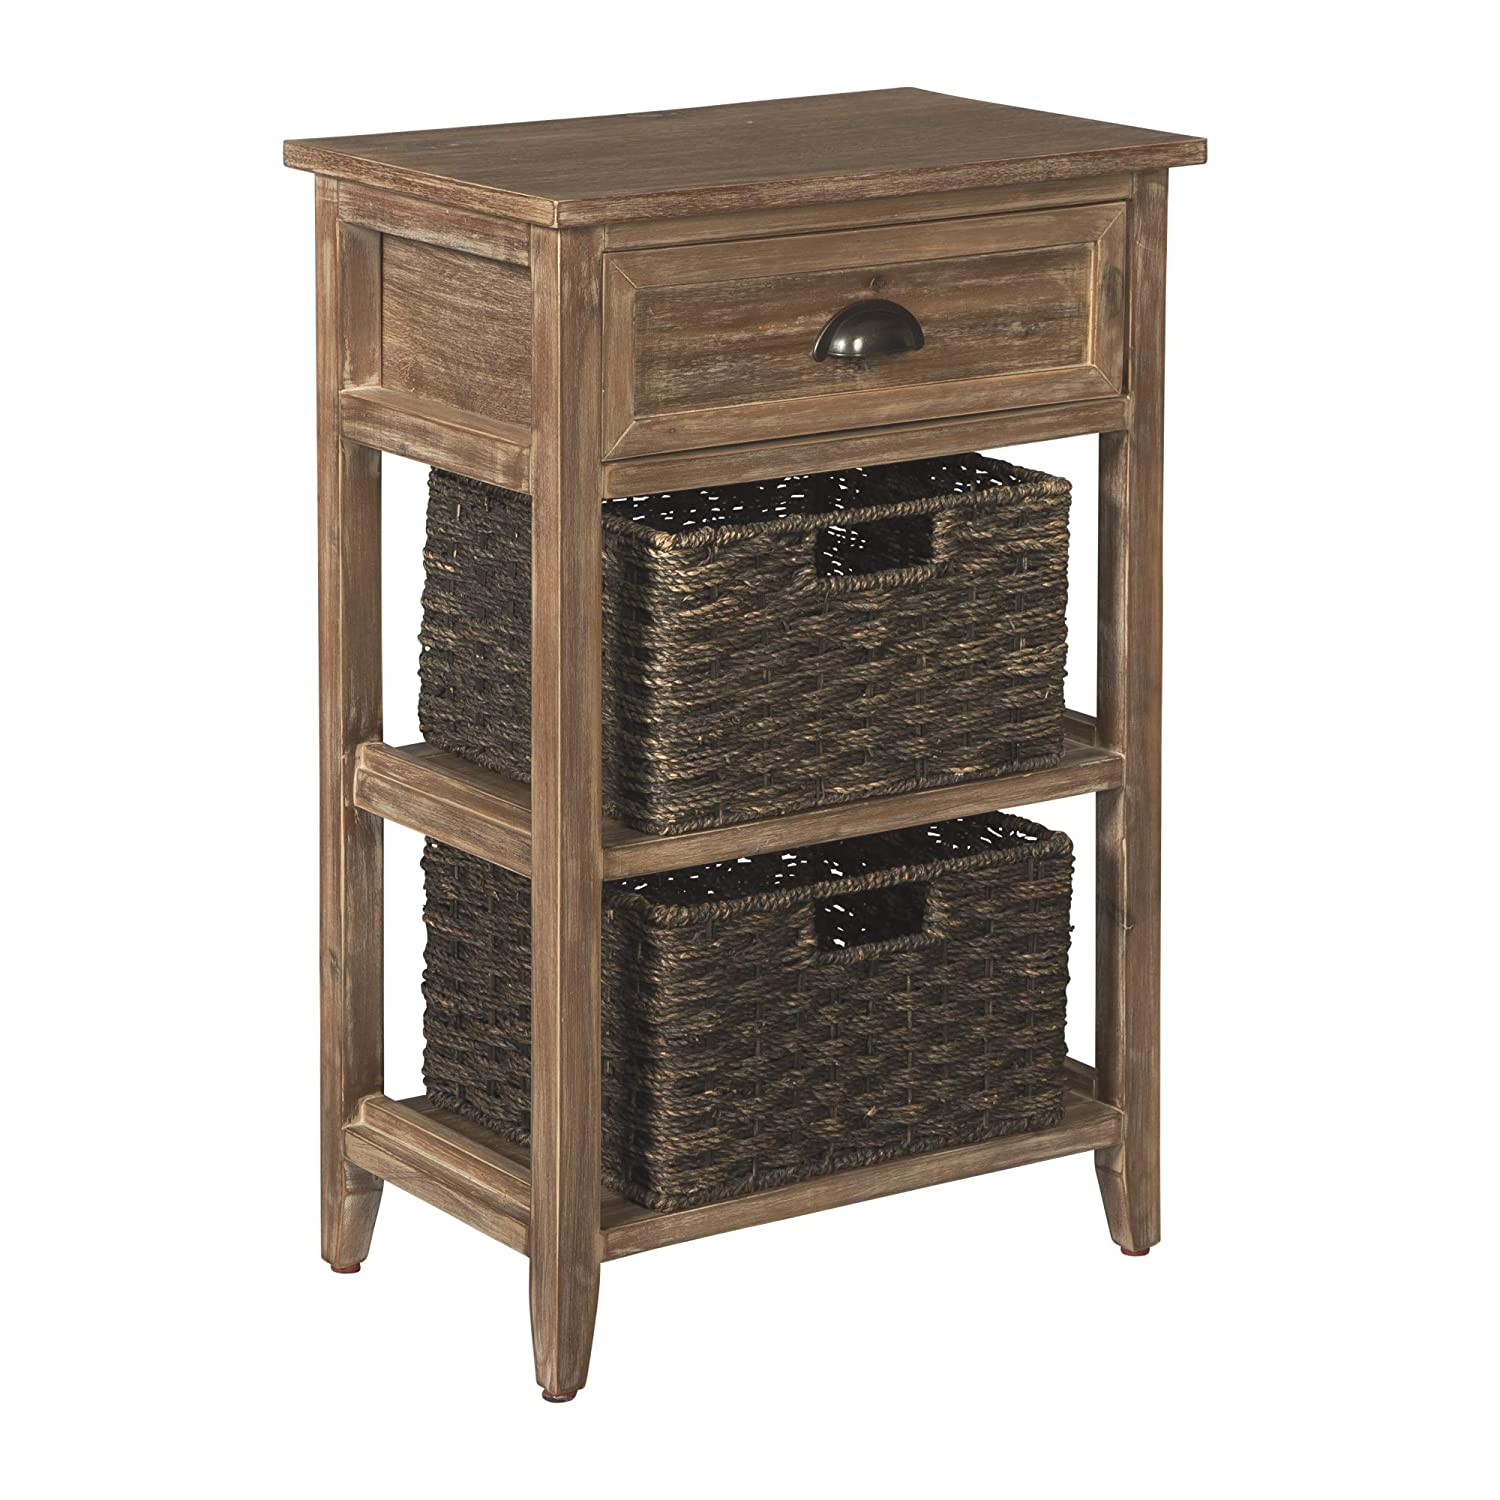 Signature Design by Ashley A4000140 Oslember Accent Table, 2-cubby, Brown